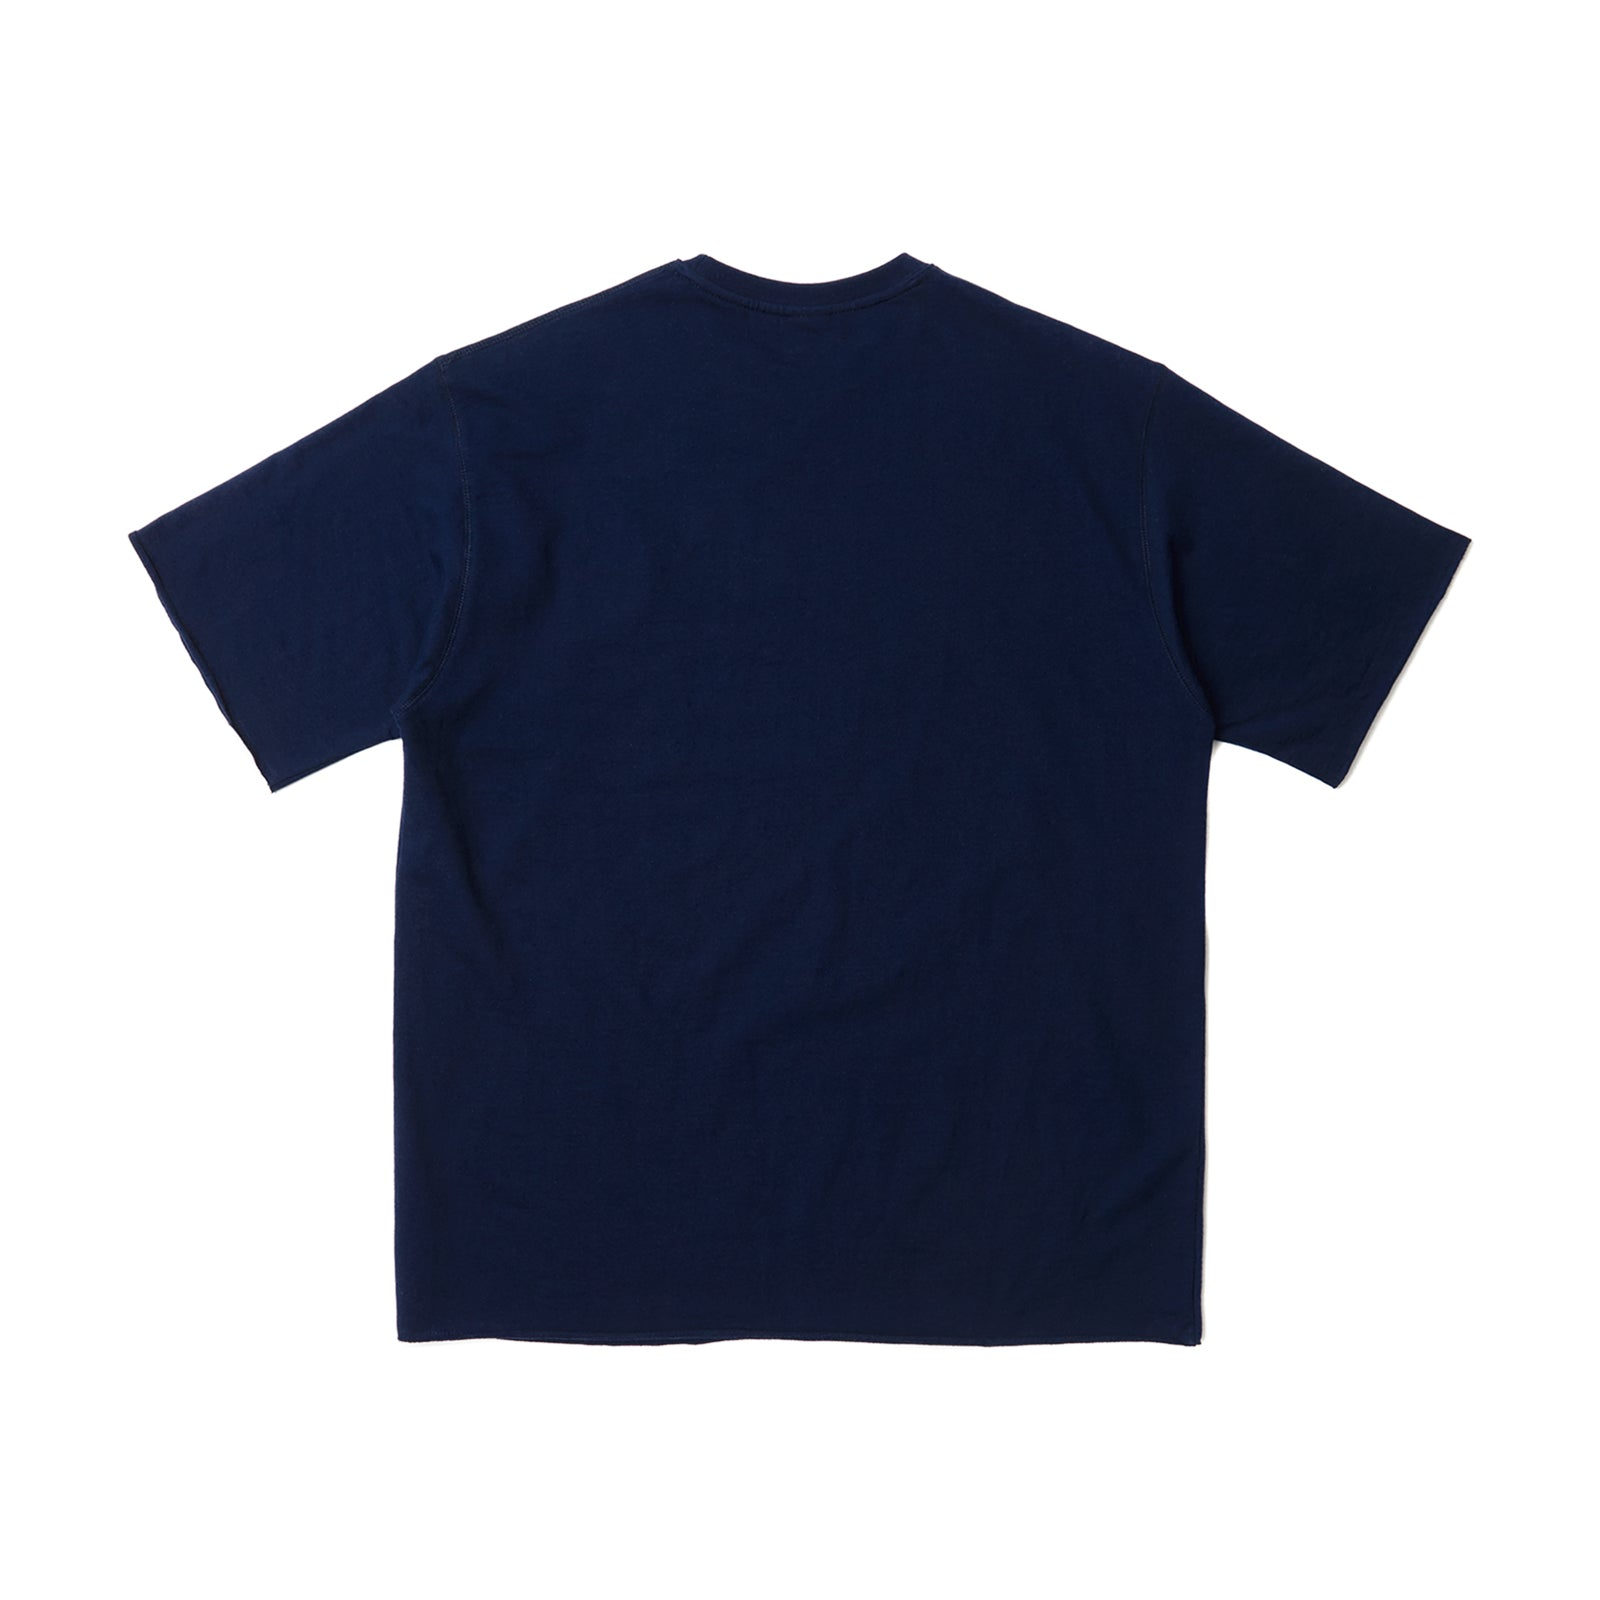 WS RAW EDGE SS T-SHIRT (NAVY)